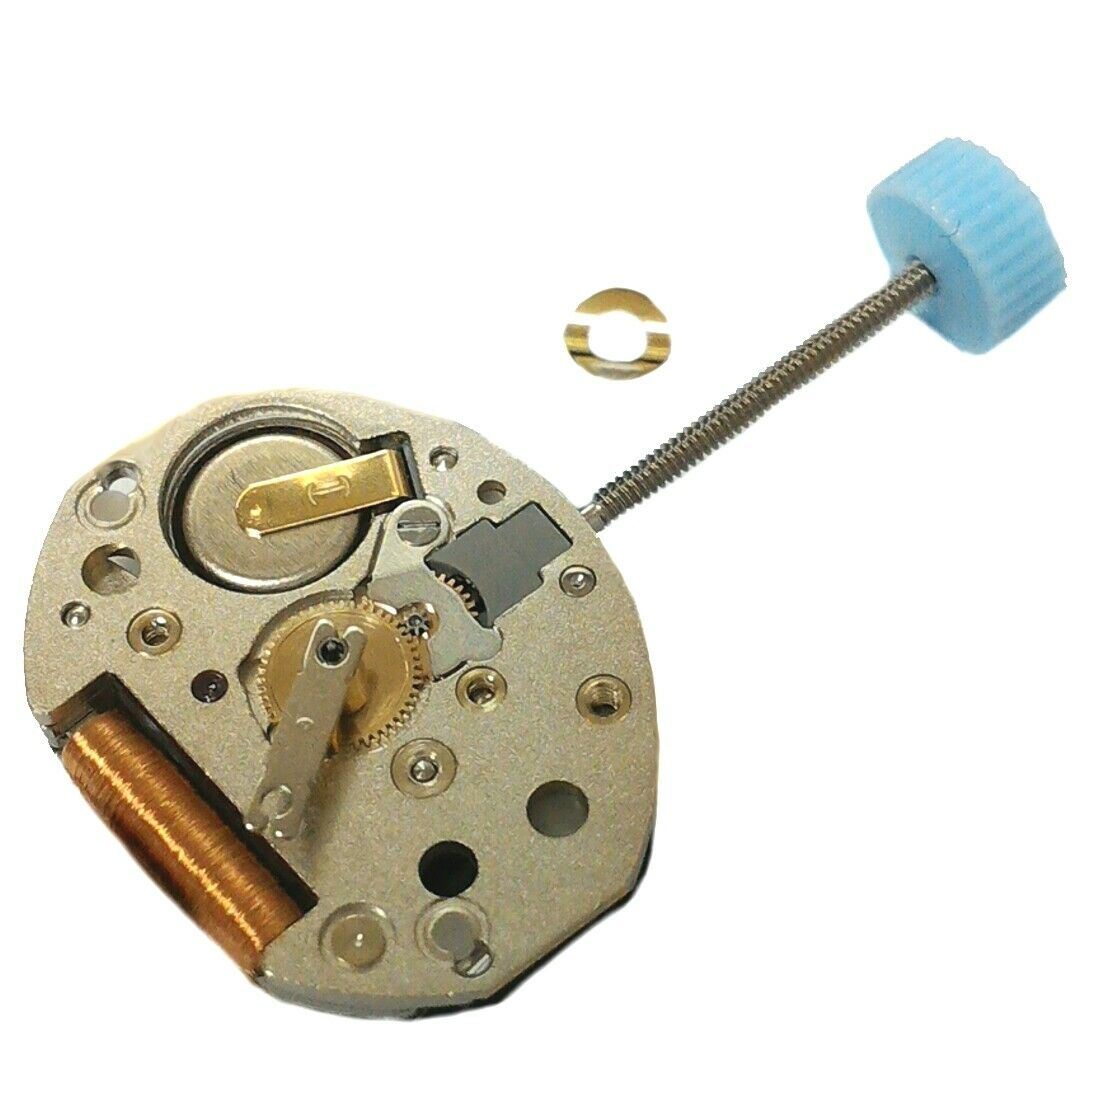 New Repair Replacement Part For 3 Hands RONDA 753 REPLACEMENT QUARTZ WATCH MOVEMENT 753/3 Hands